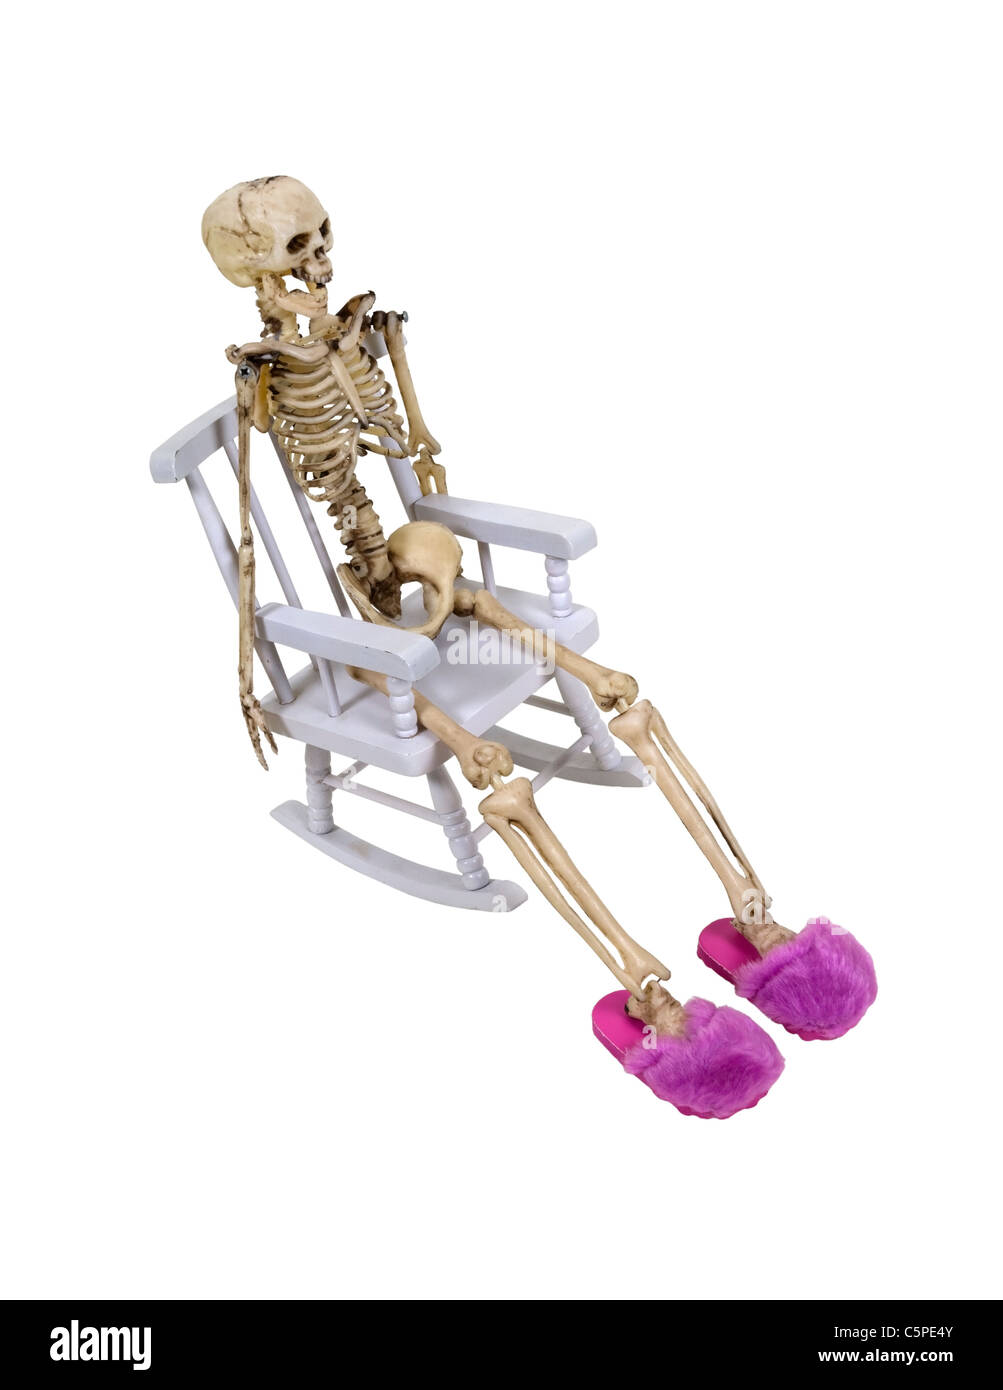 A skeleton stretched out in a rocking chair wearing pink fuzzy slippers - path included - Stock Image